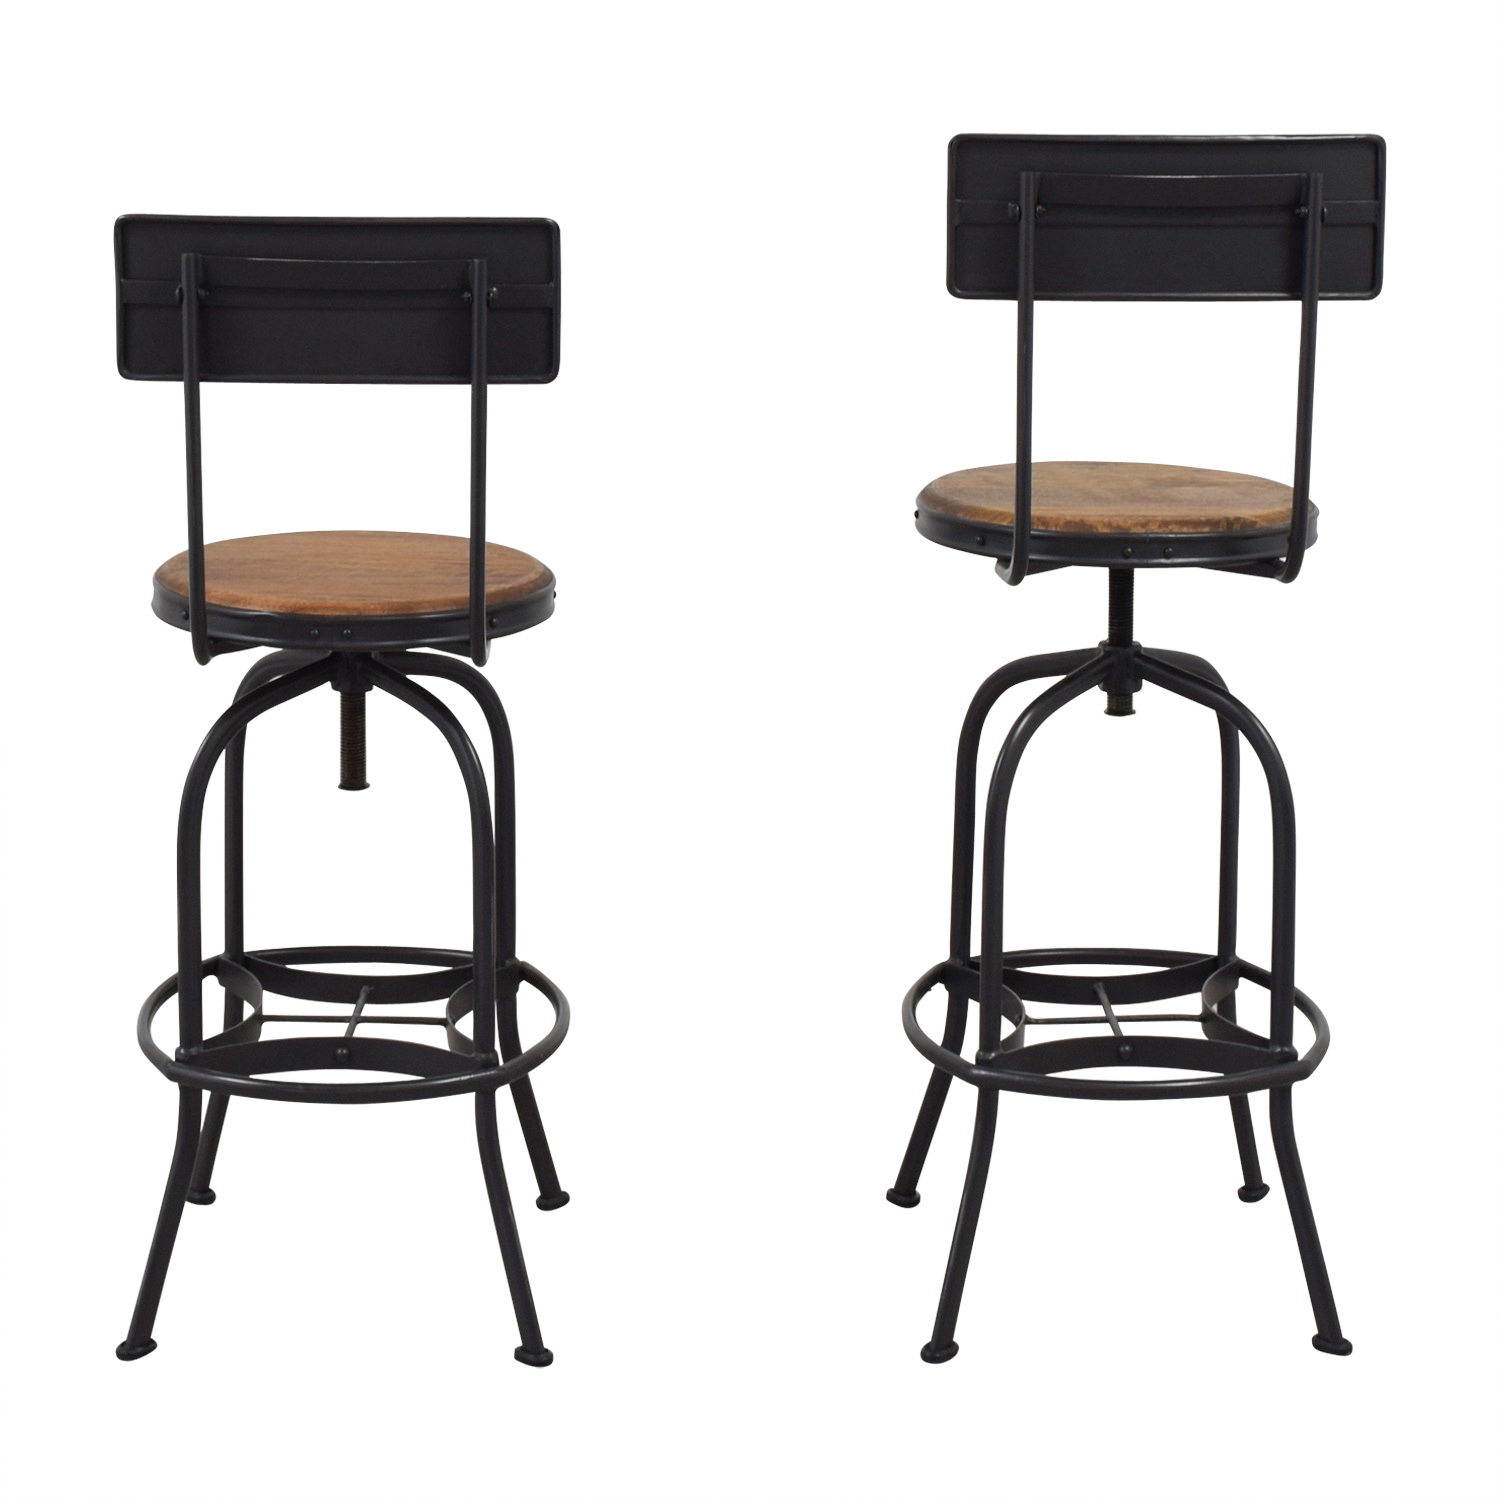 shop  Adjustable Height Bar Stools online